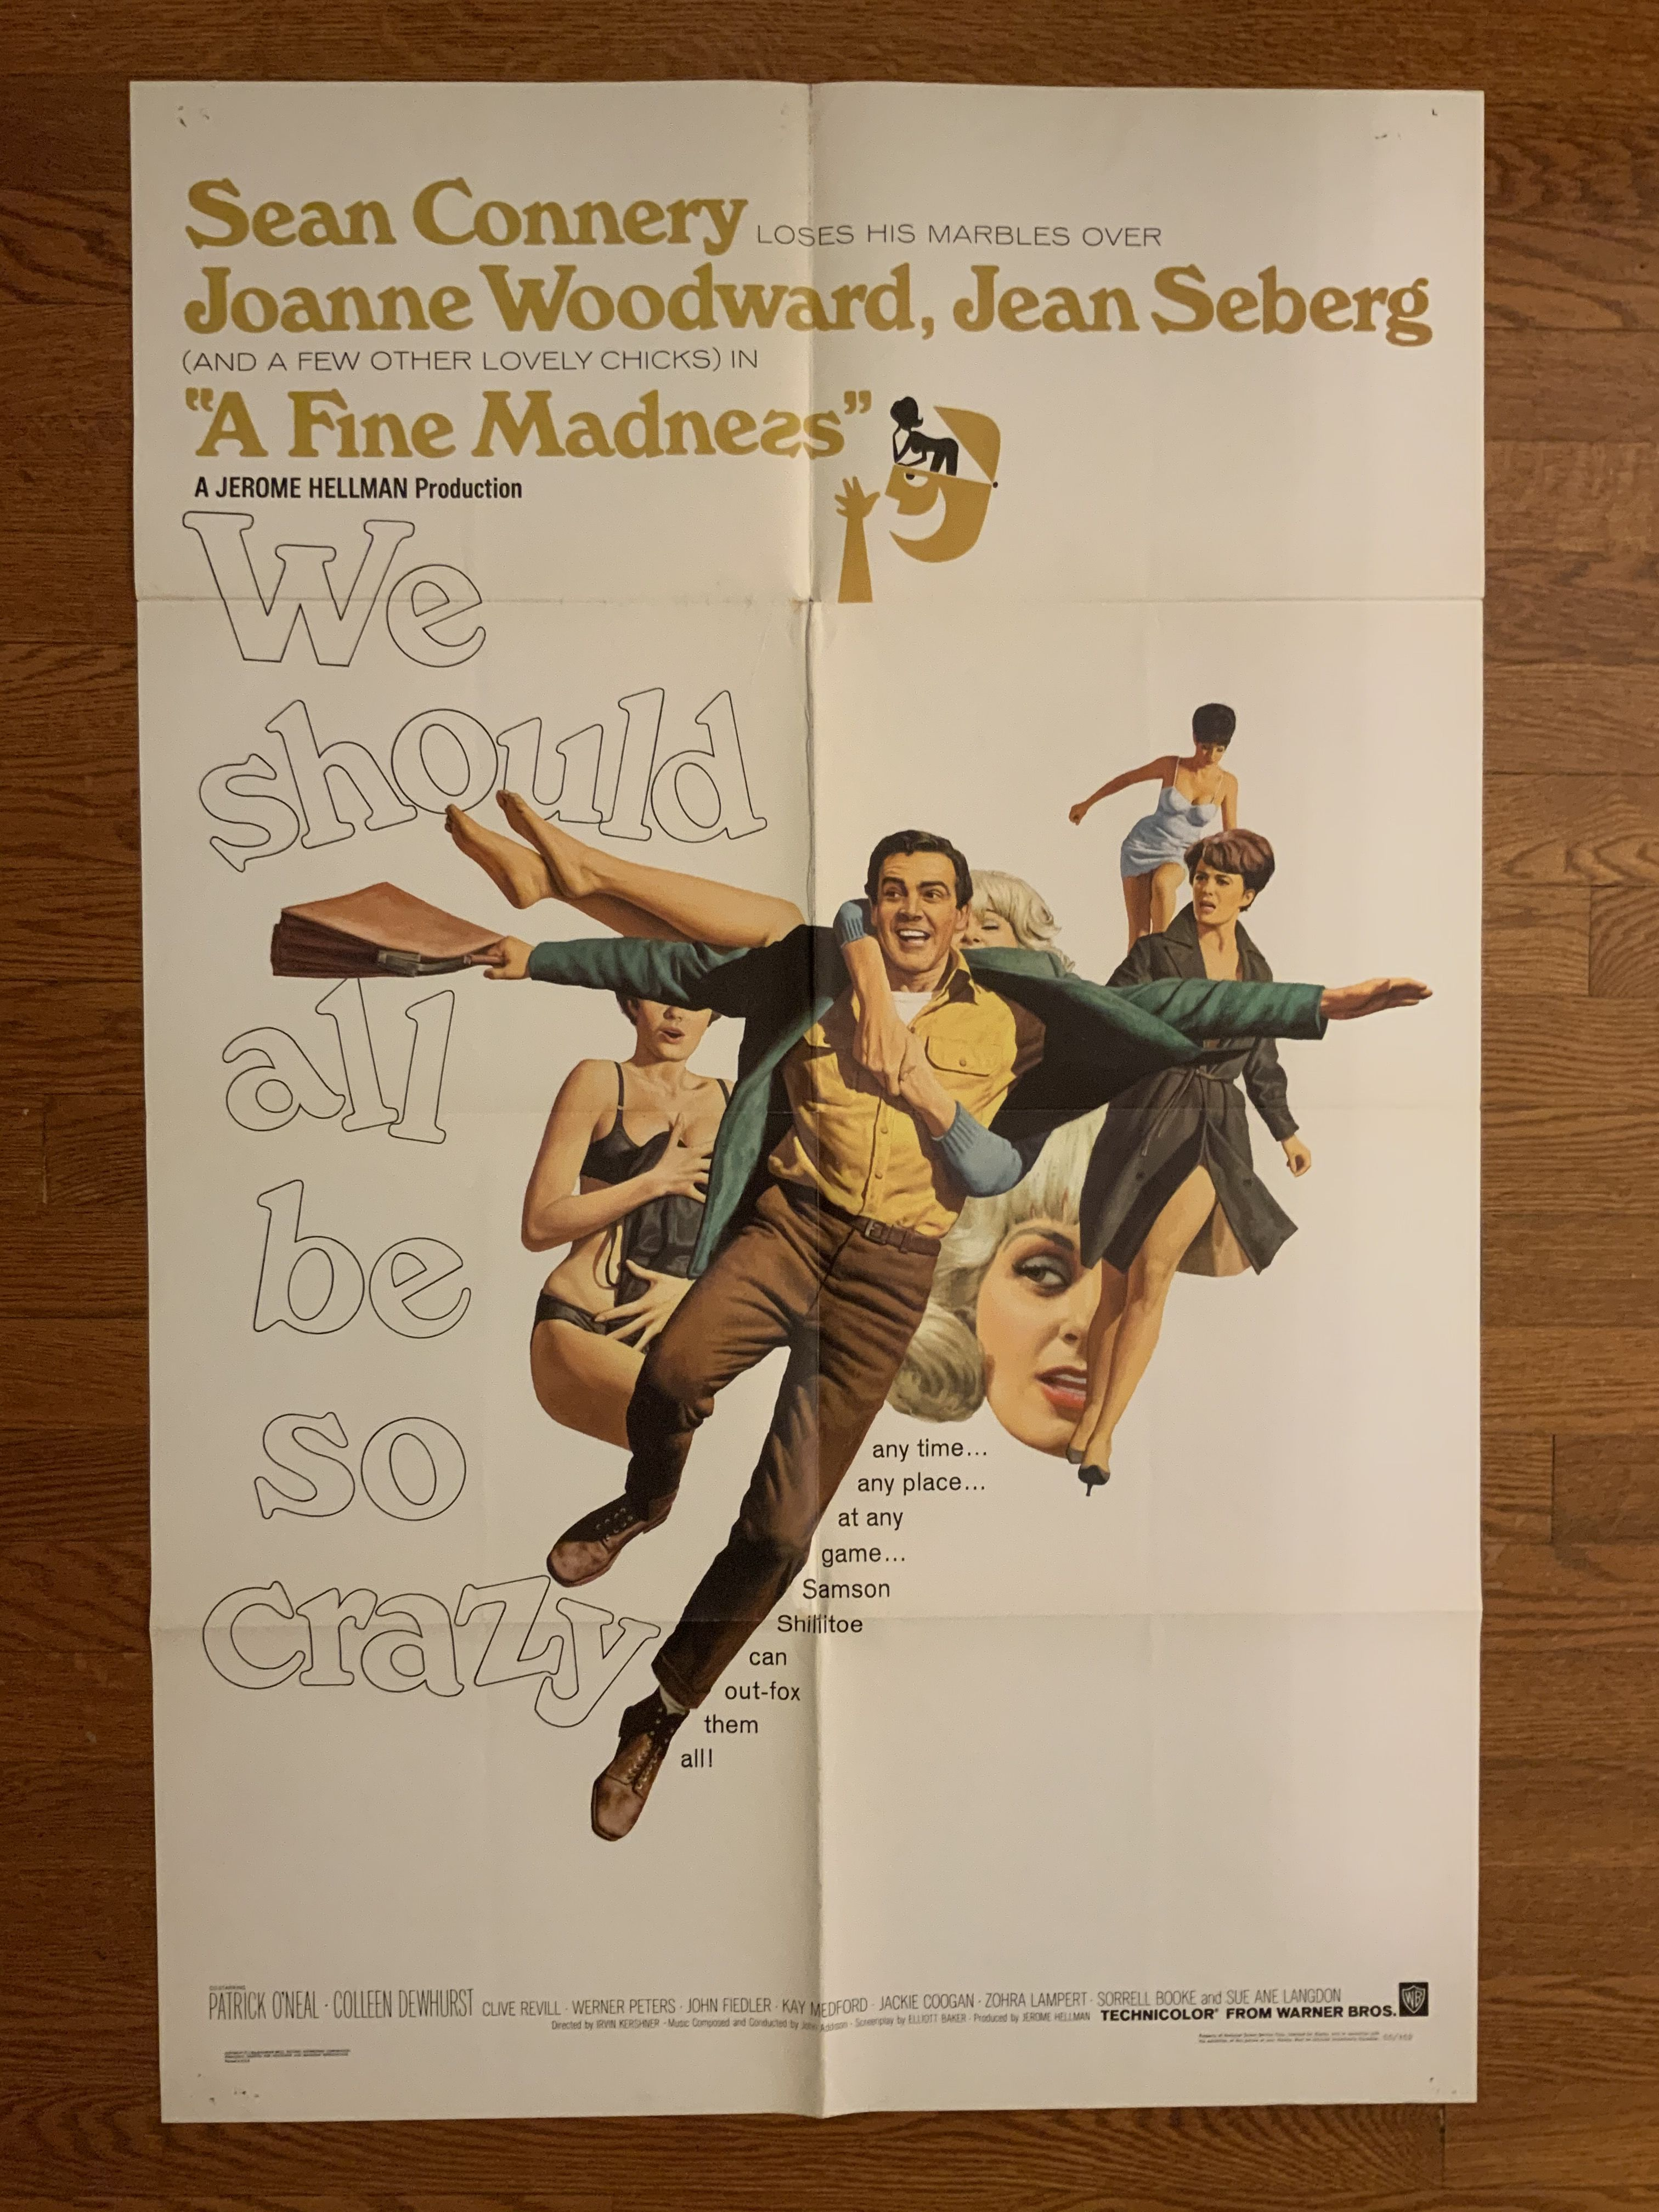 A Fine Madness *** (1966, Sean Connery, Joanne Woodward